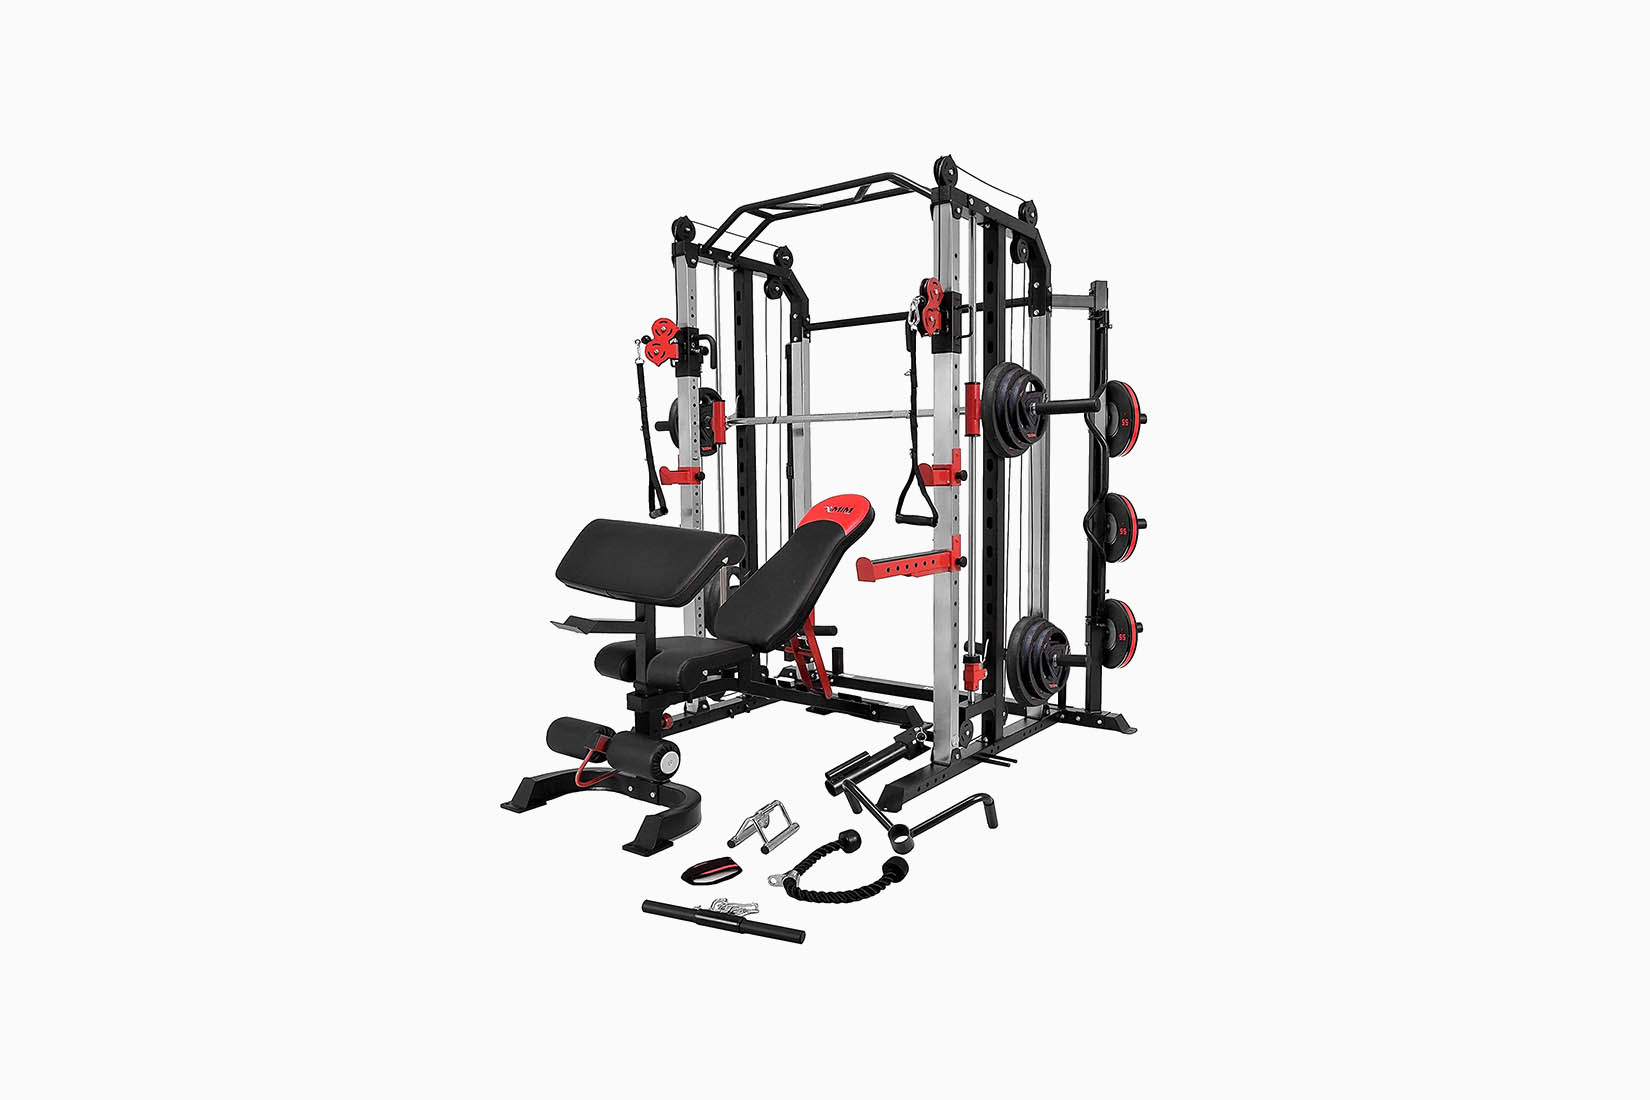 best home gym equipment mim usa review - luxe digital